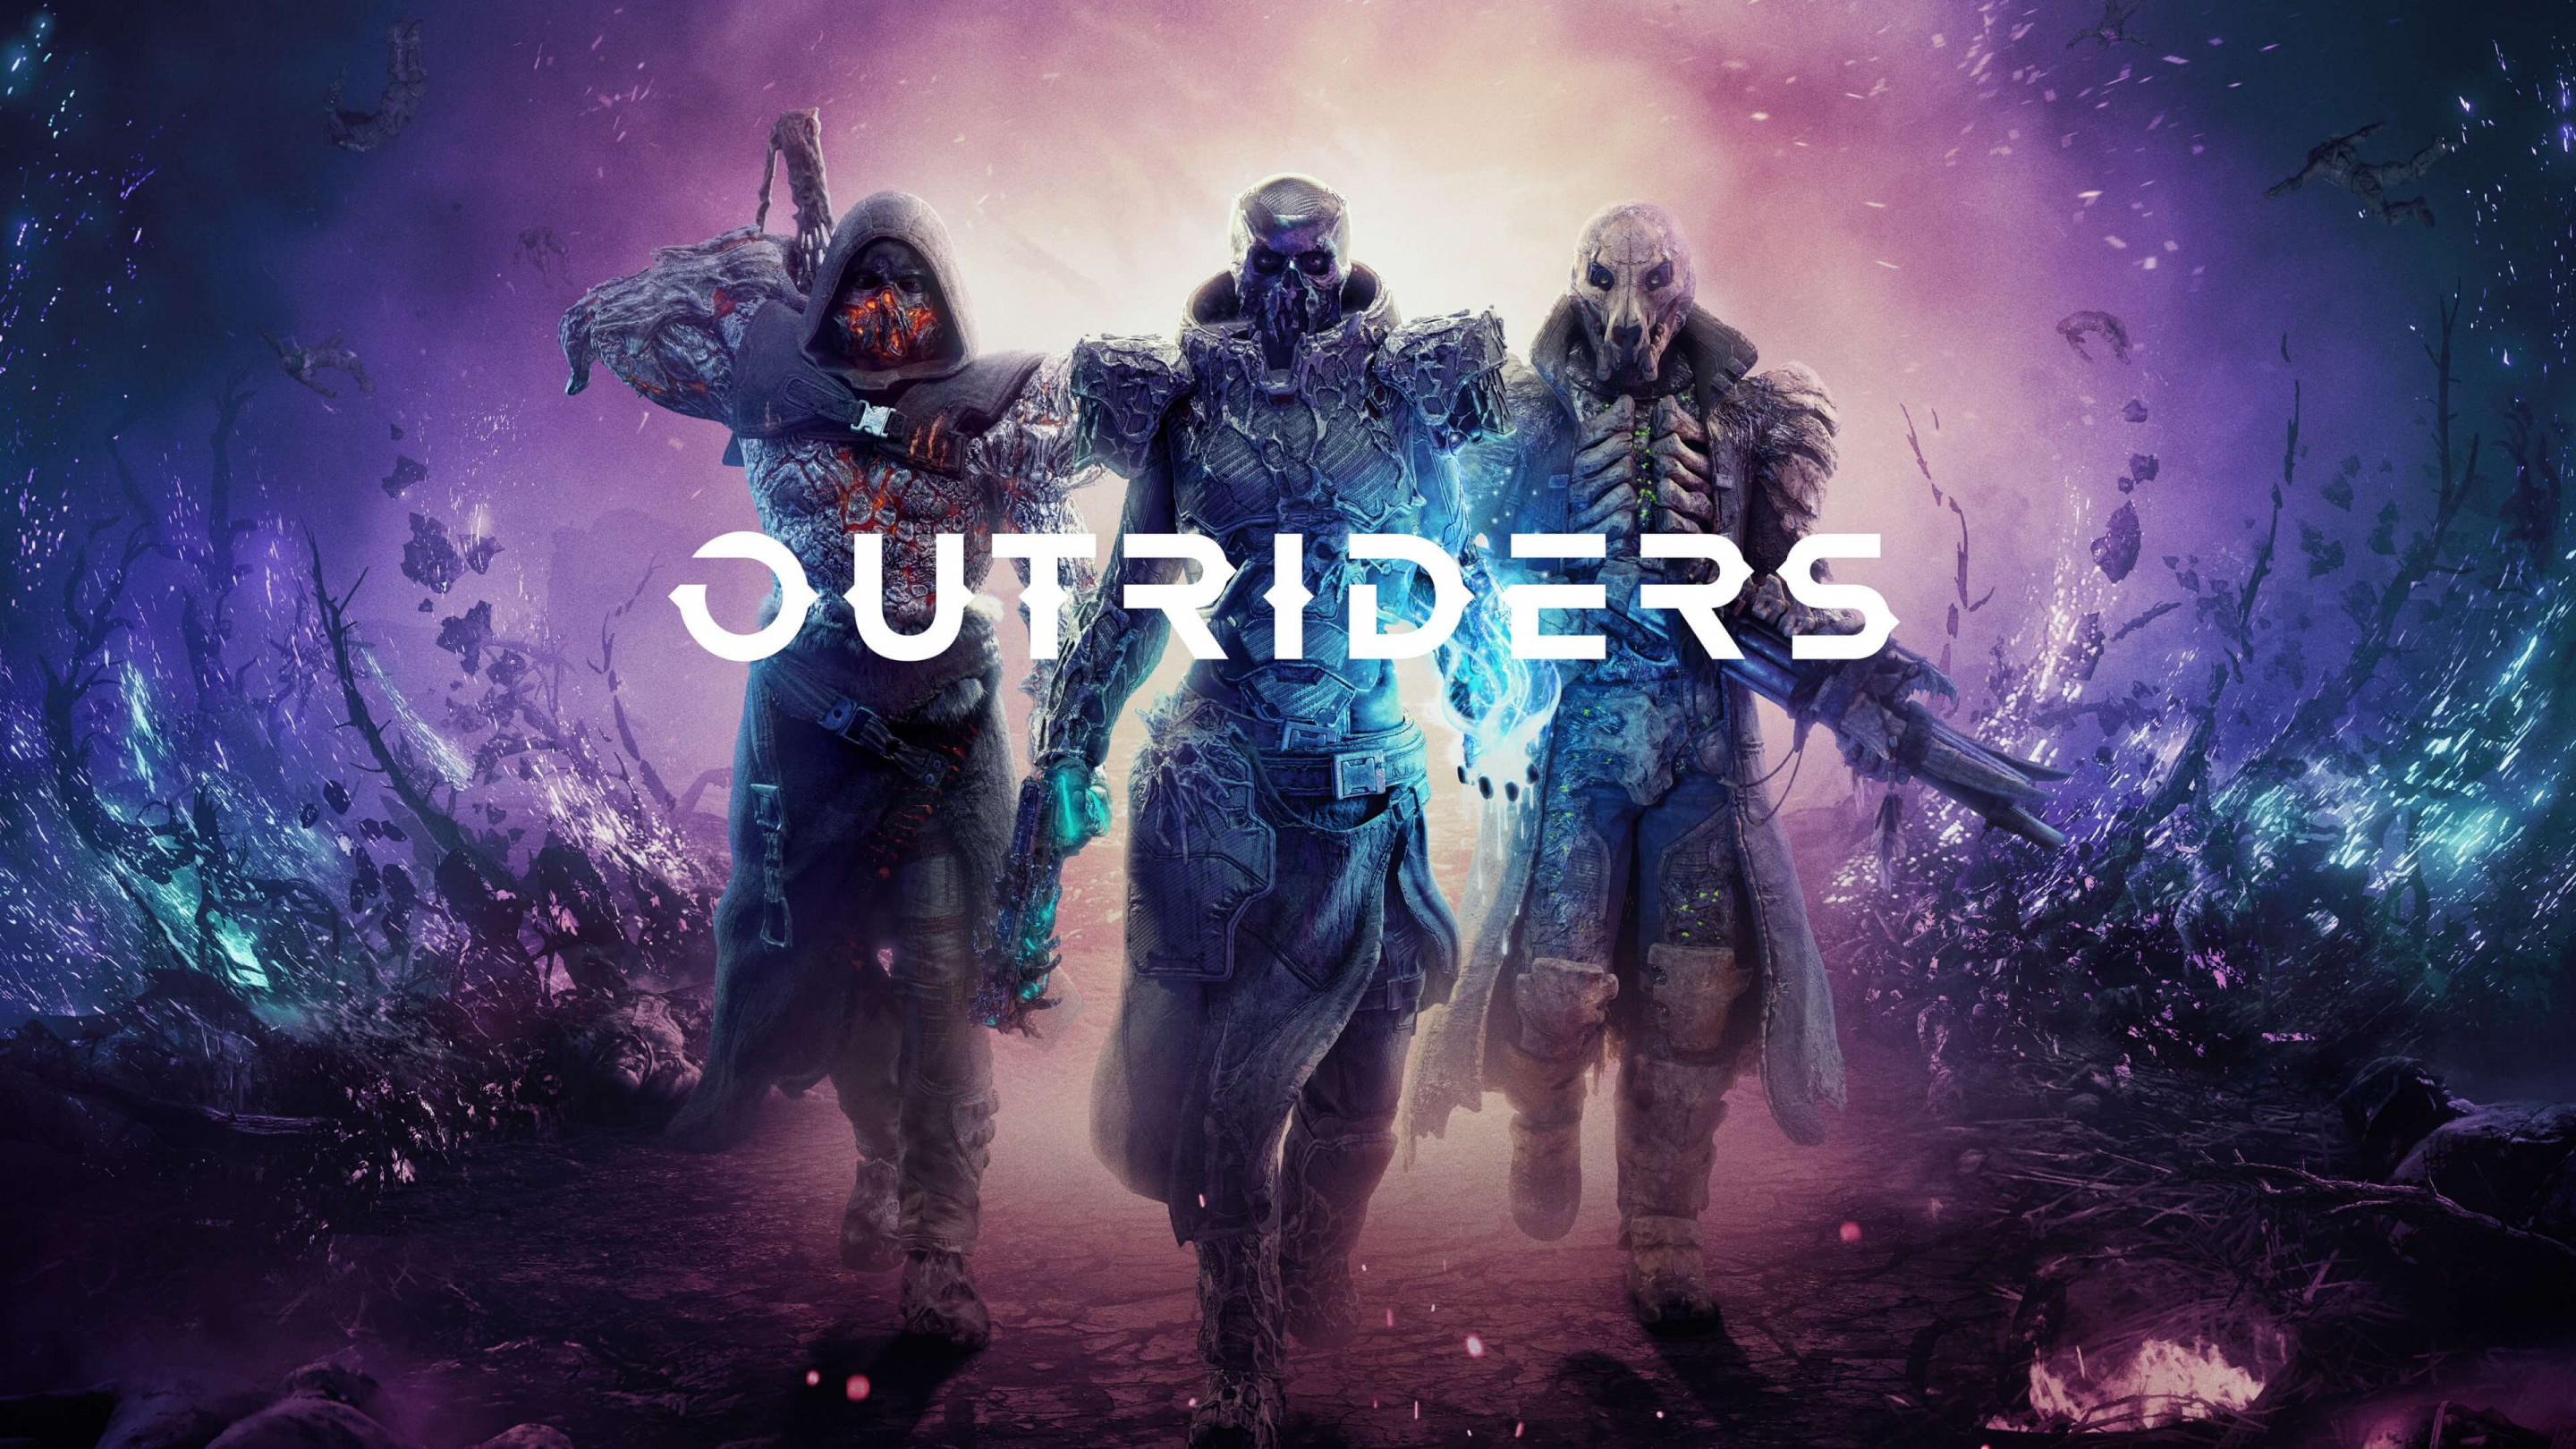 Outriders wallpaper 2880x1620